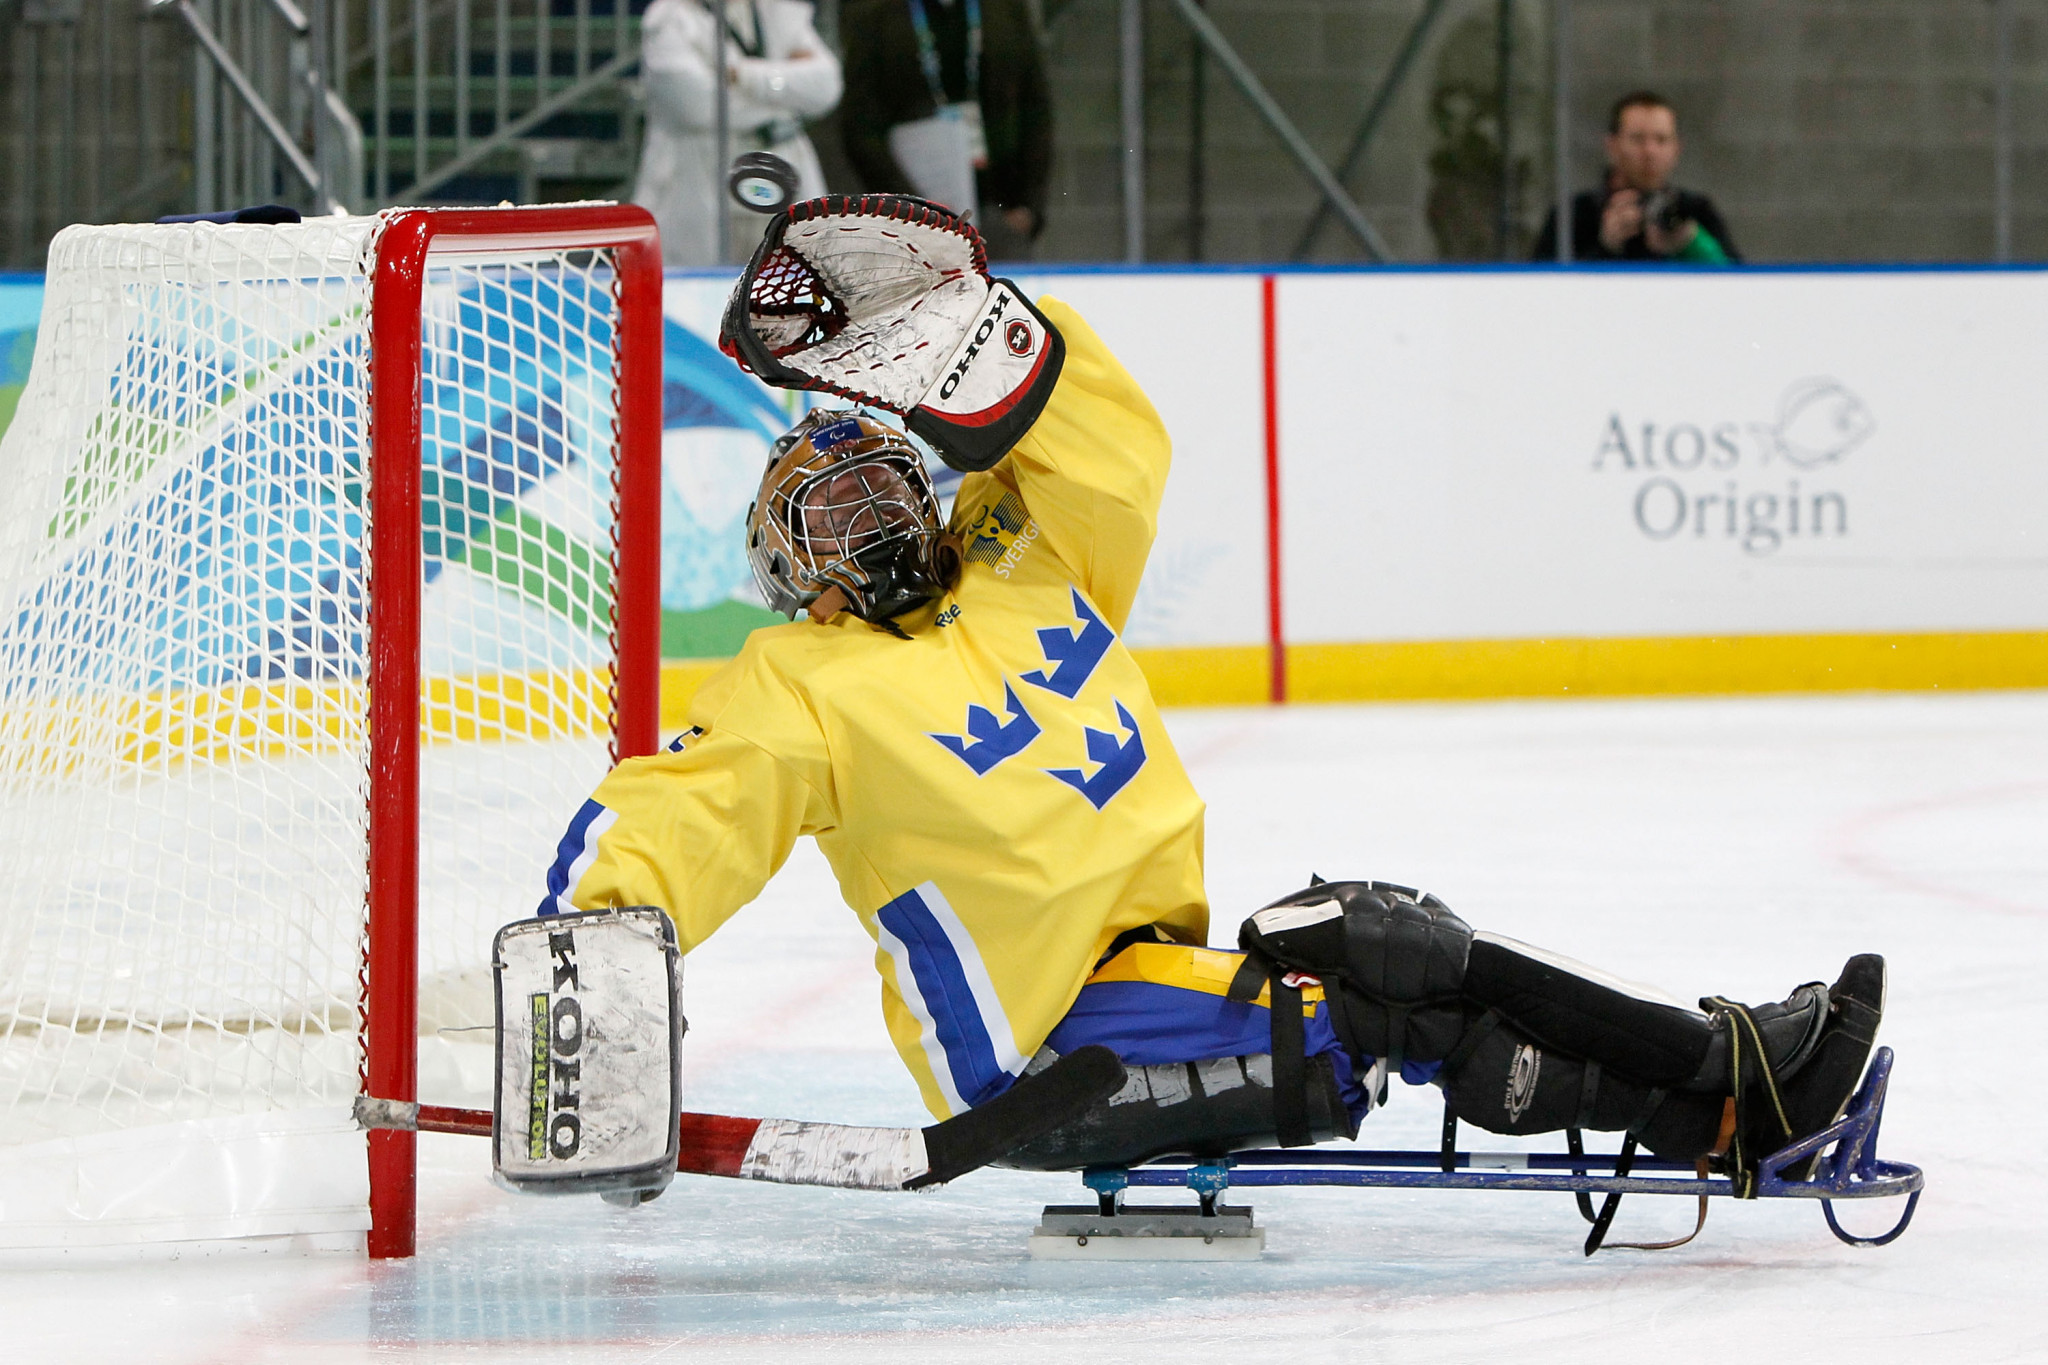 Sweden book last ticket to Beijing 2022 qualification tournament after shootout win at World Championships B-Pool